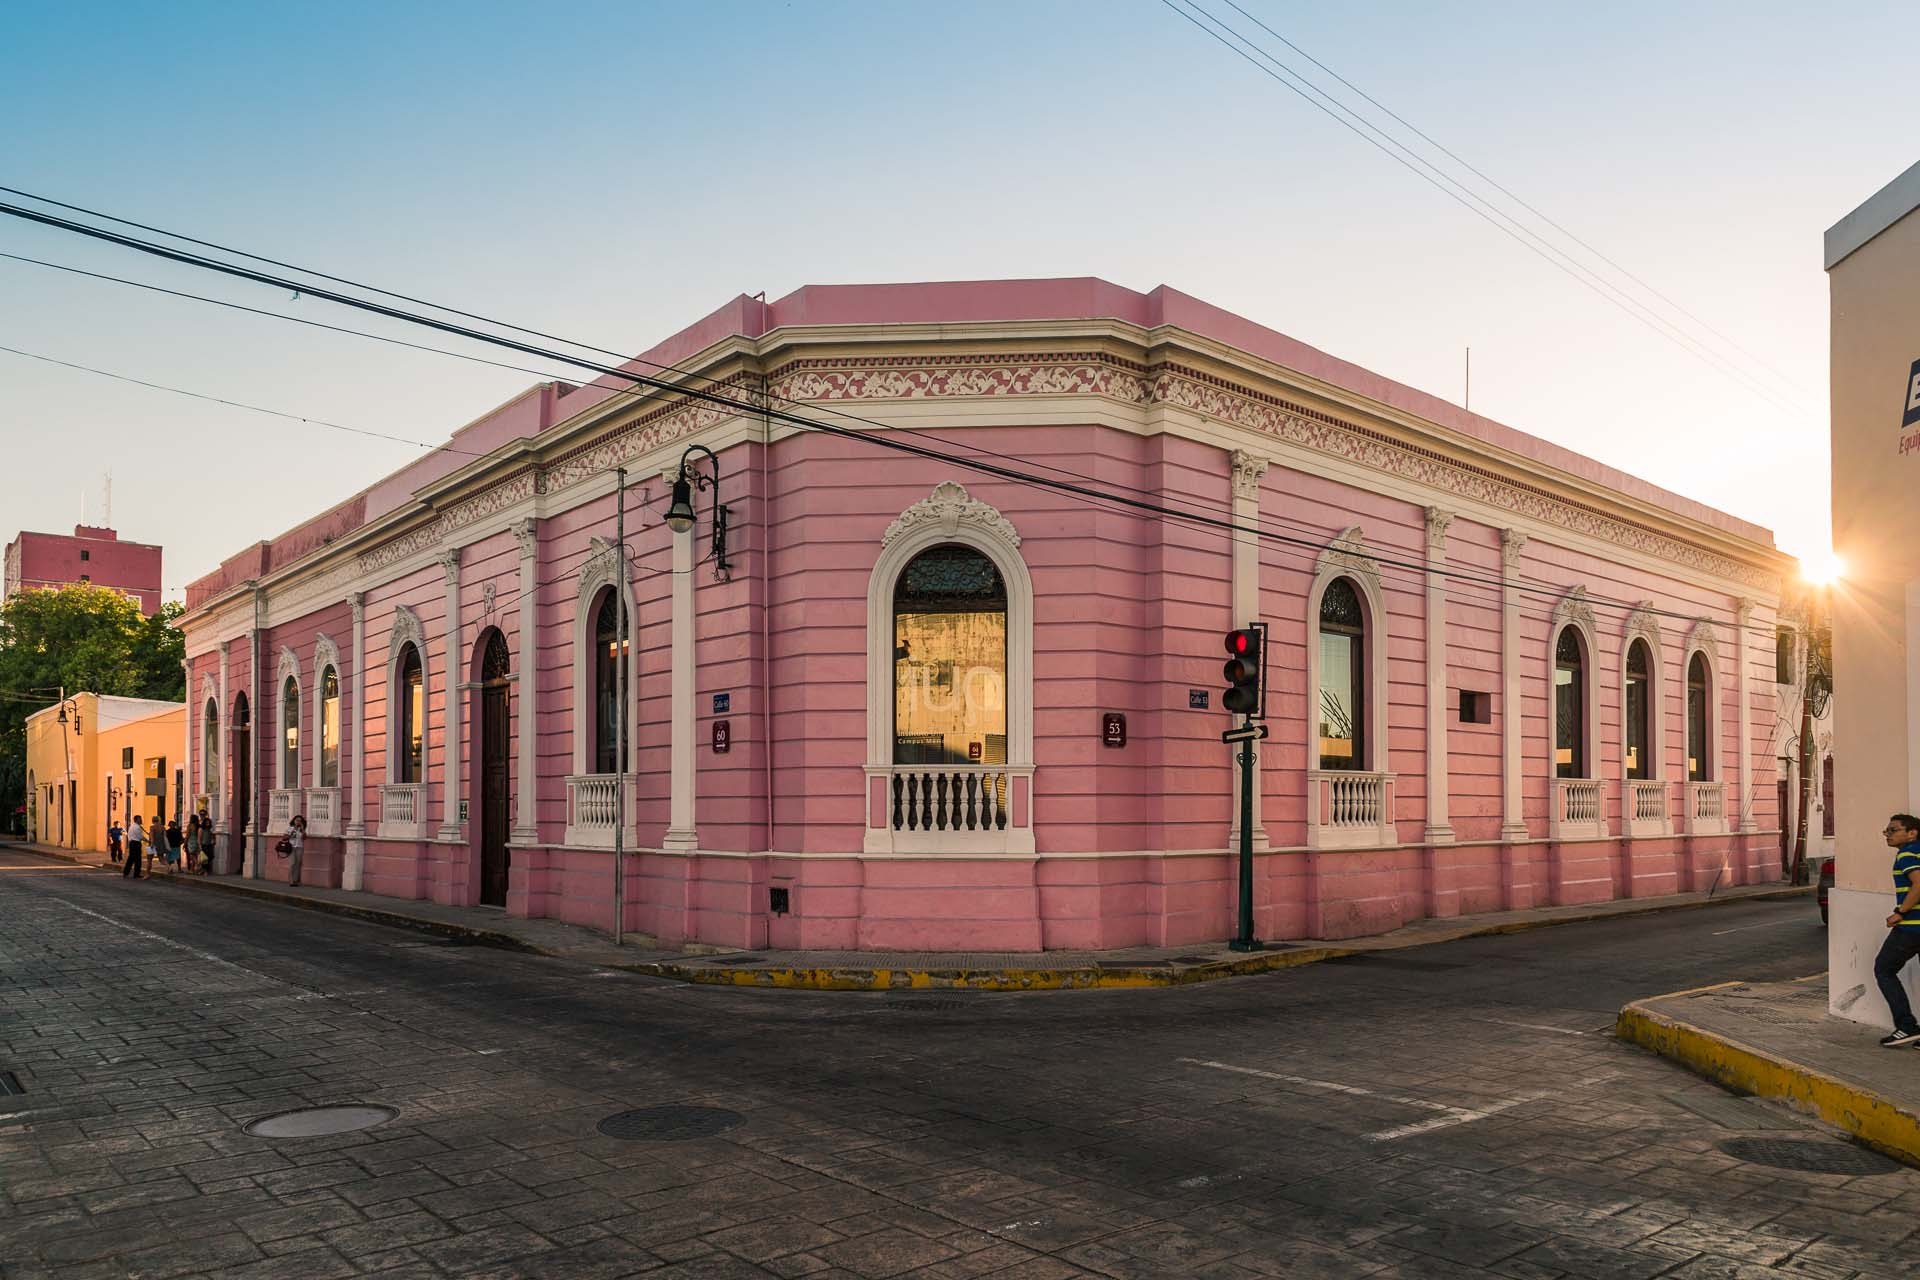 Next stop: Mérida, the largest city of the Yucatán Peninsula.